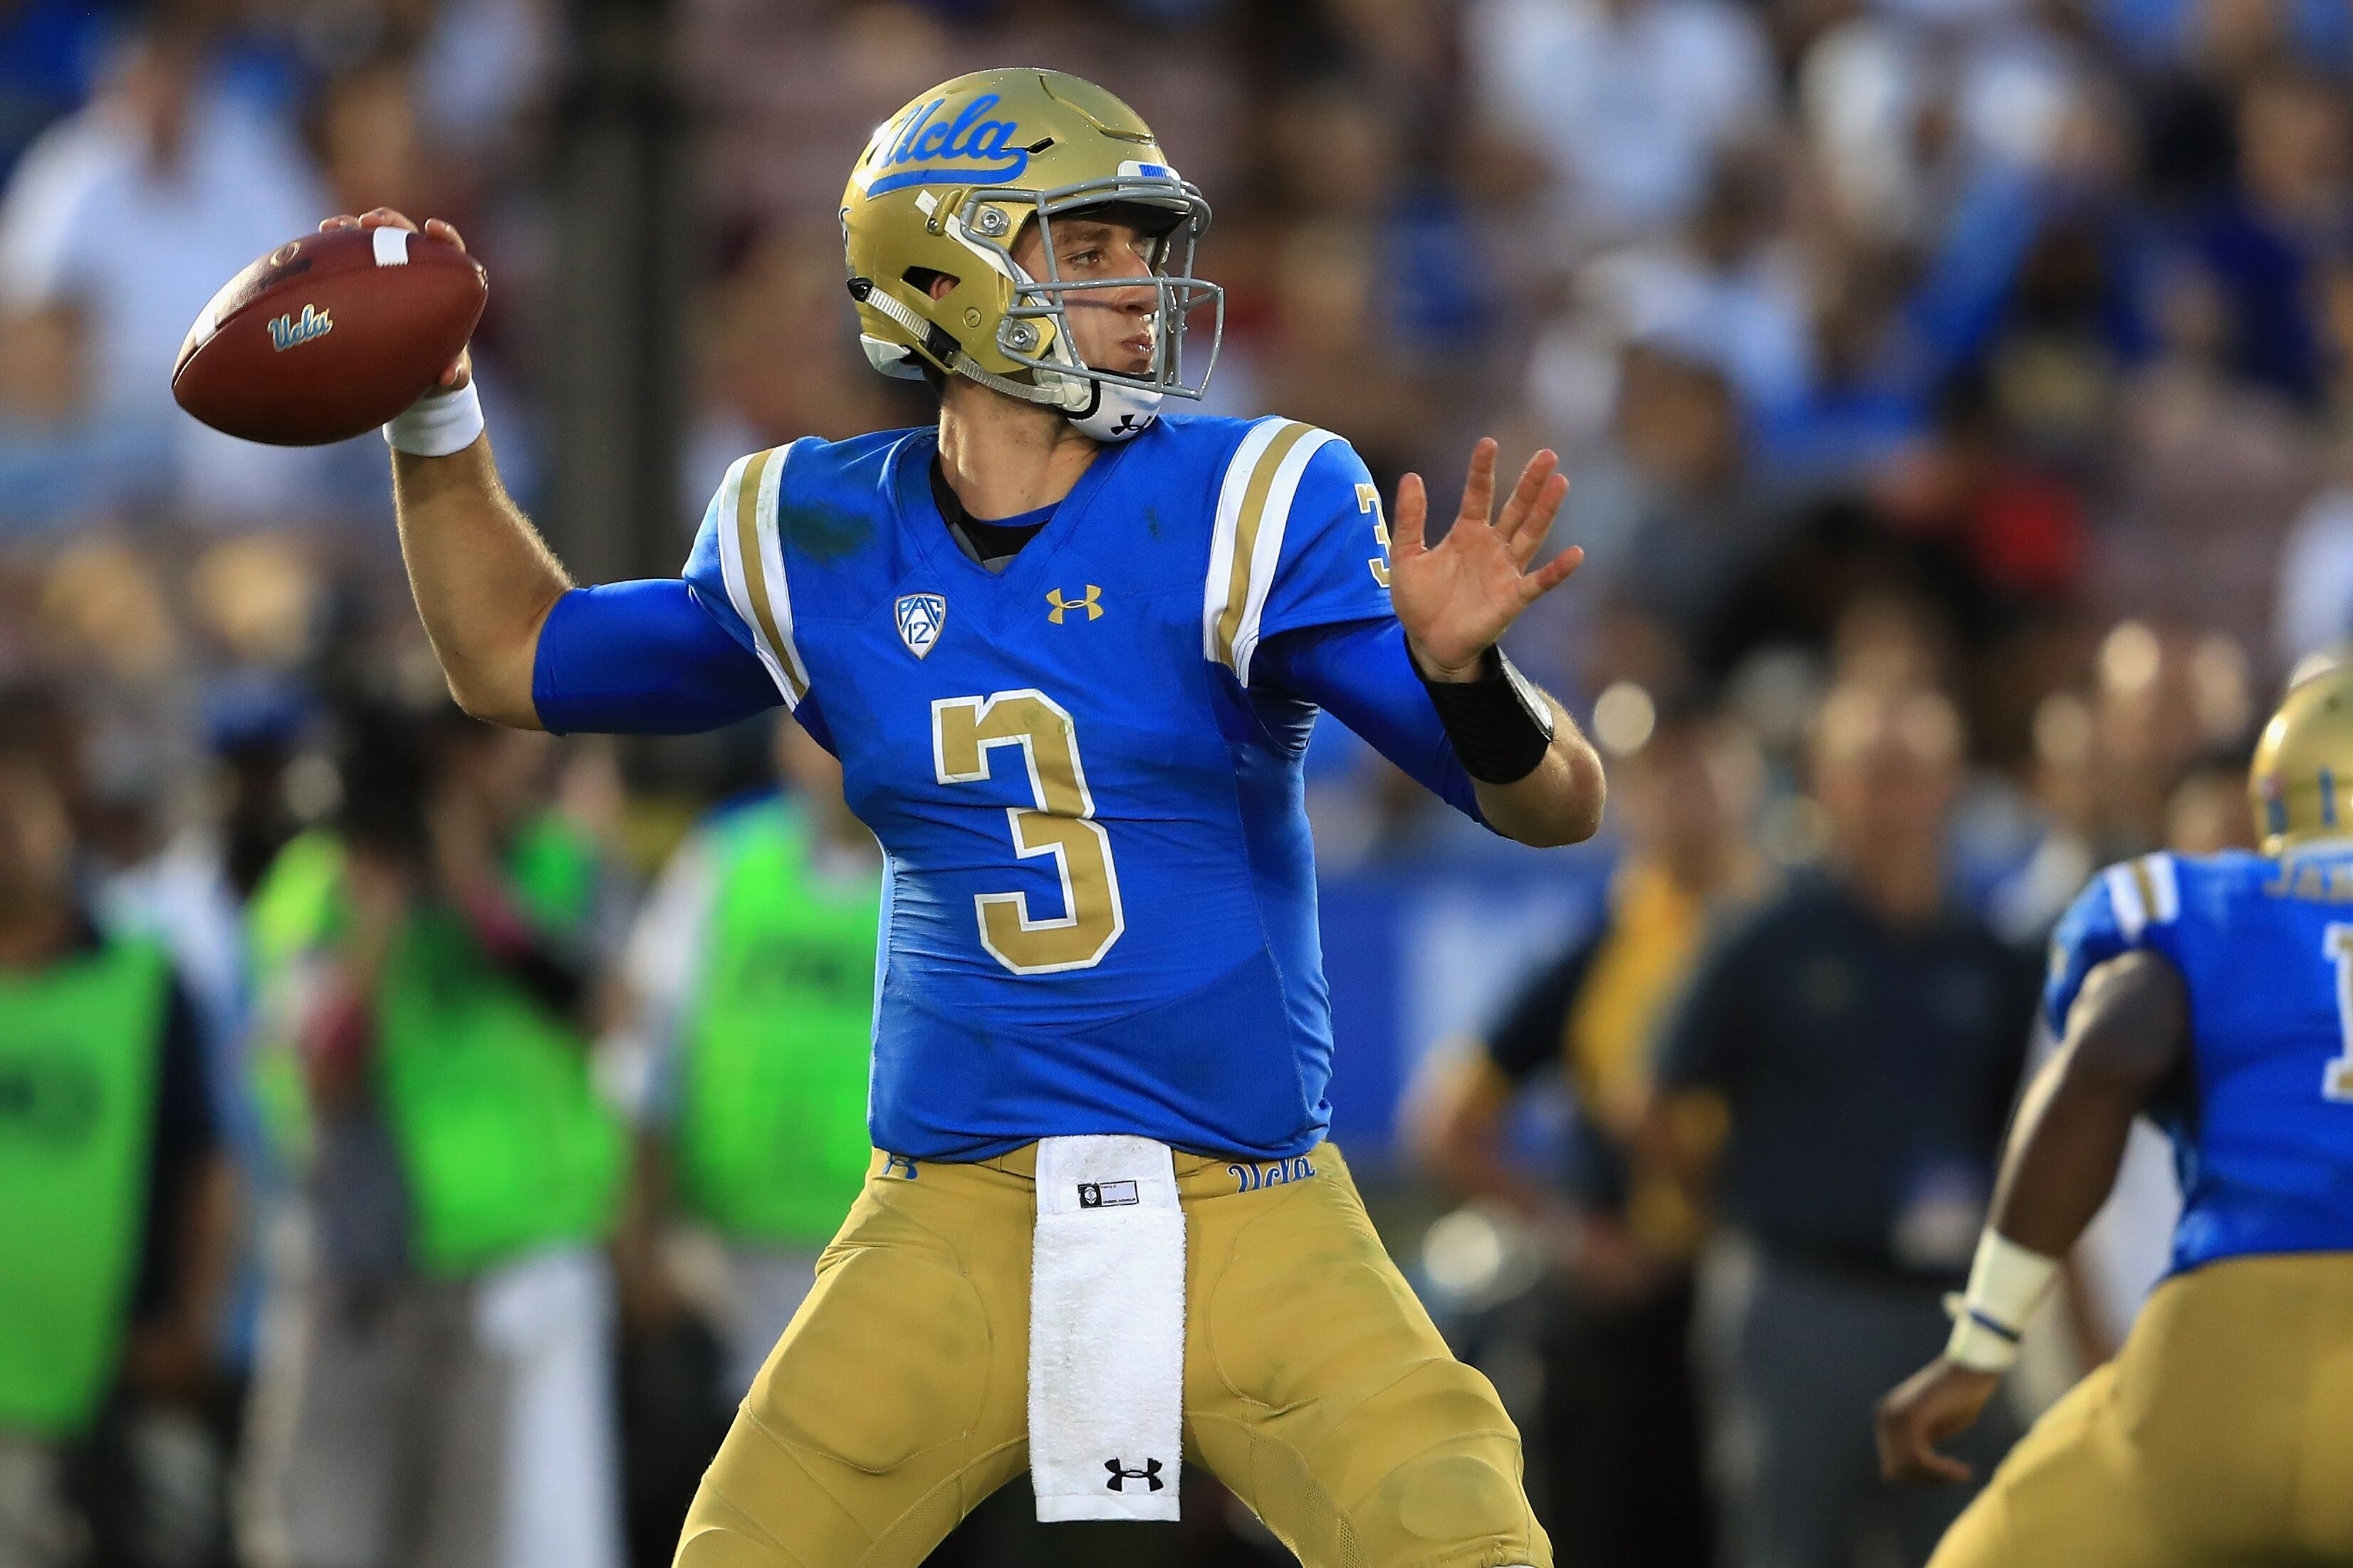 Know Your Opponent: UCLA Football vs. Memphis Tigers